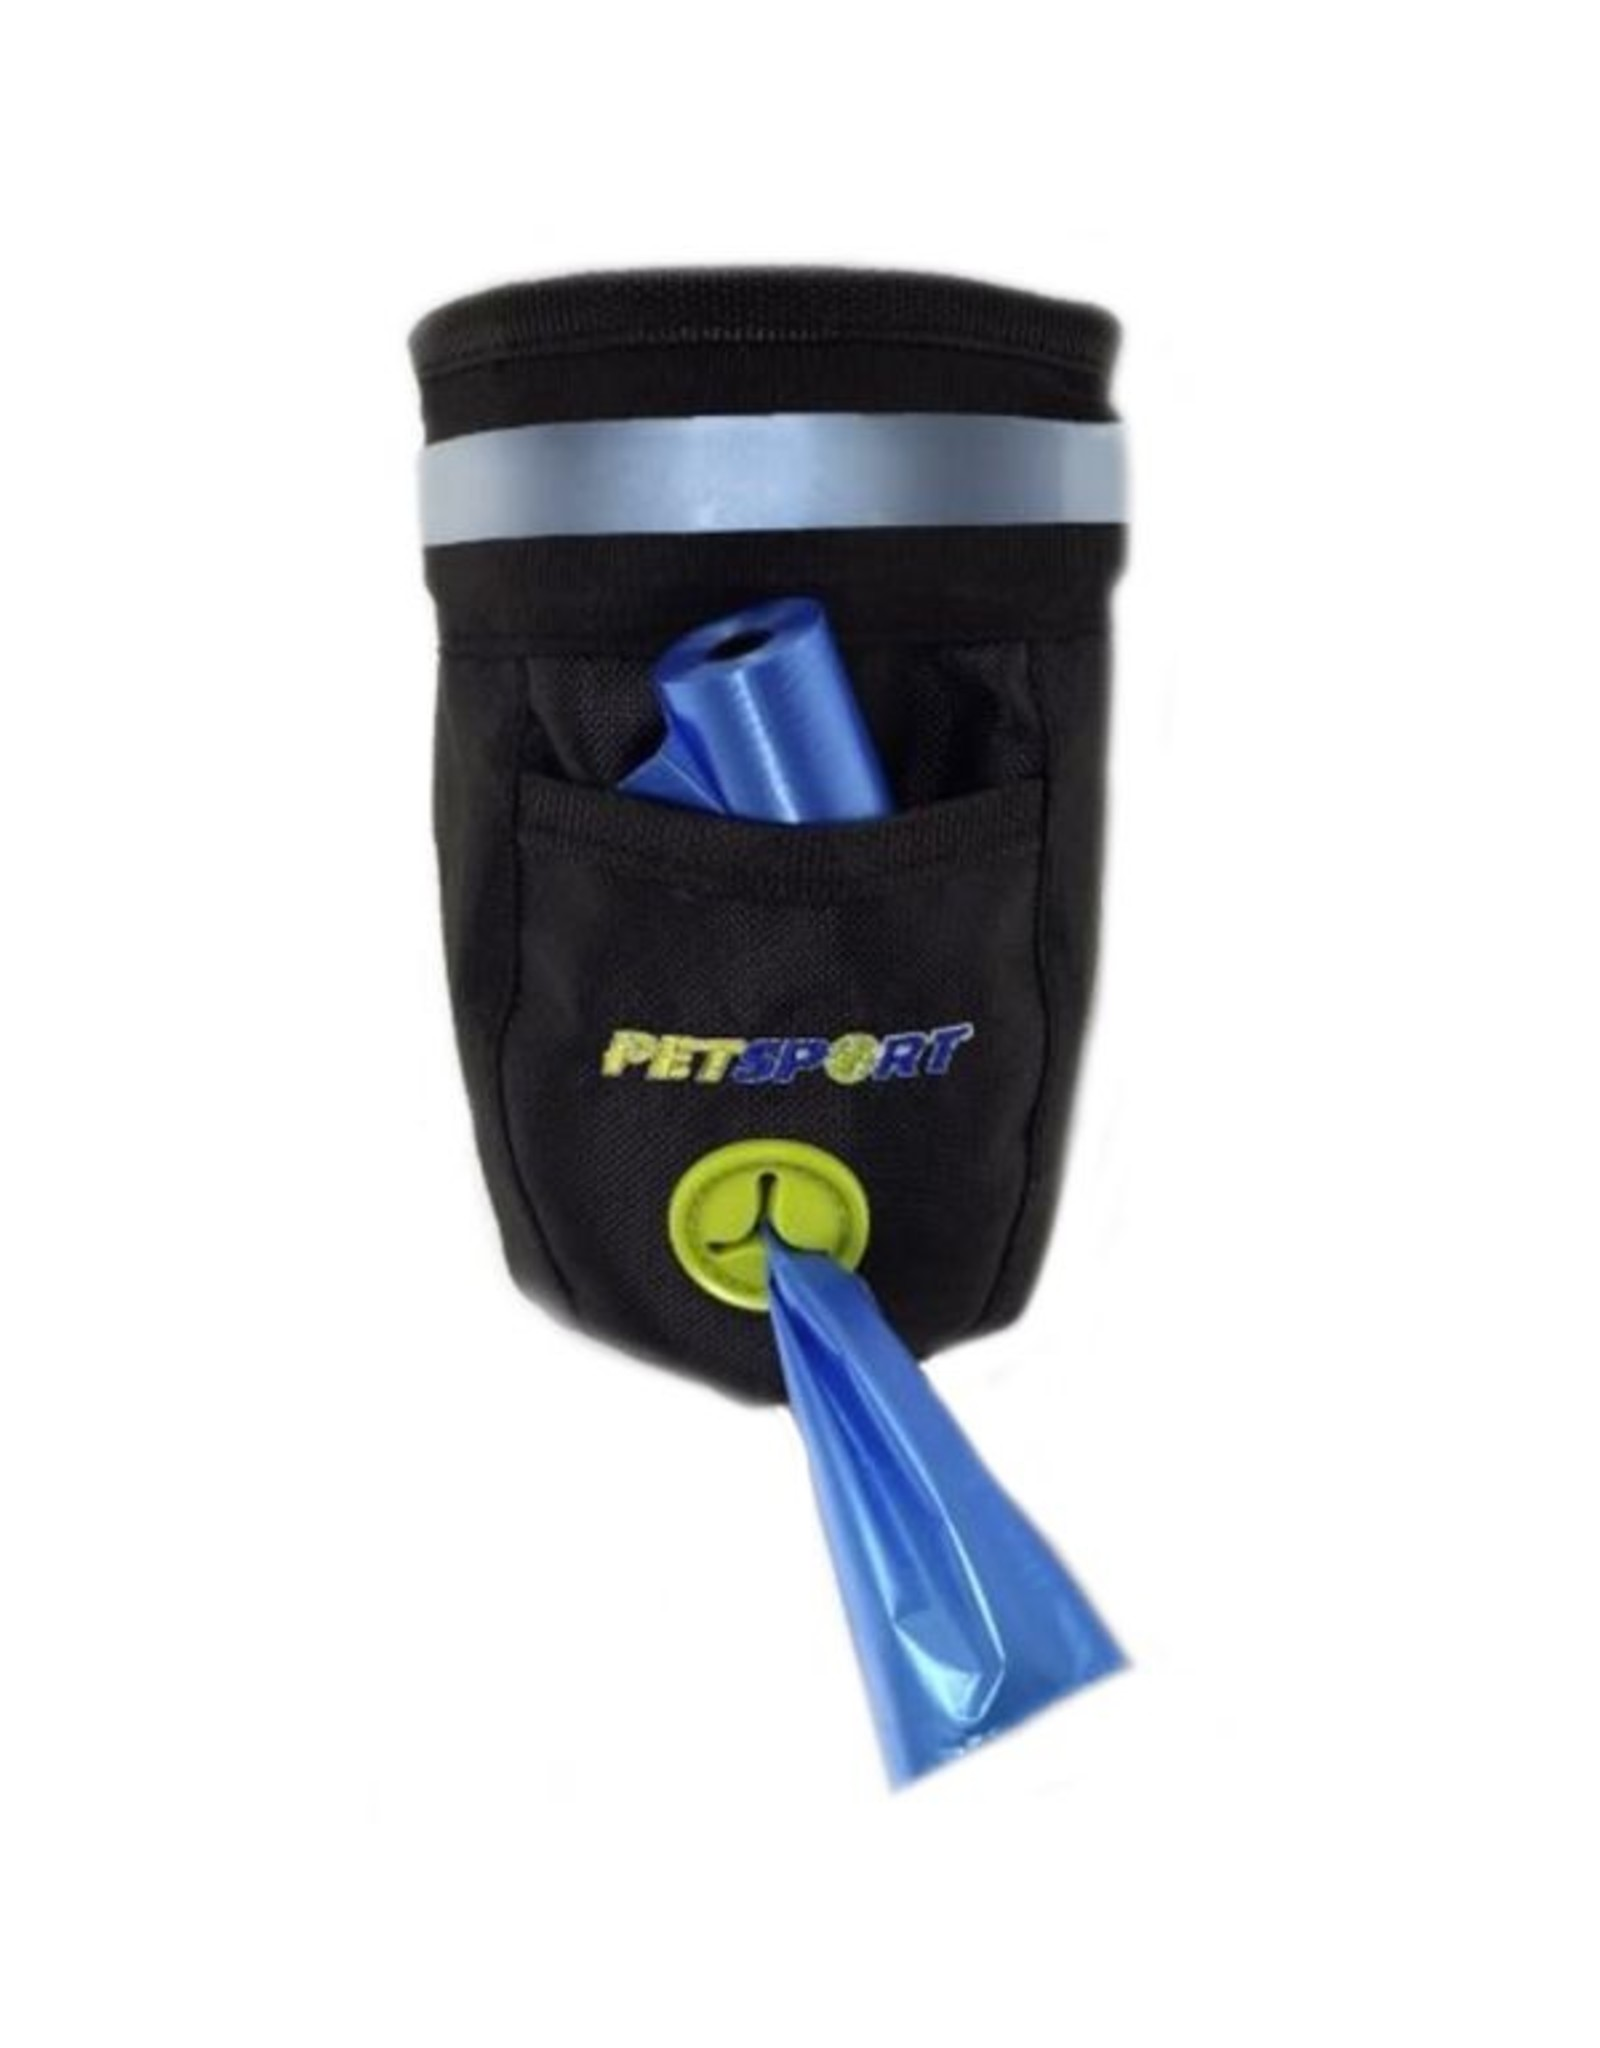 PetSport Biscuit Buddy Treat Pouch with Waste Bag Dispenser